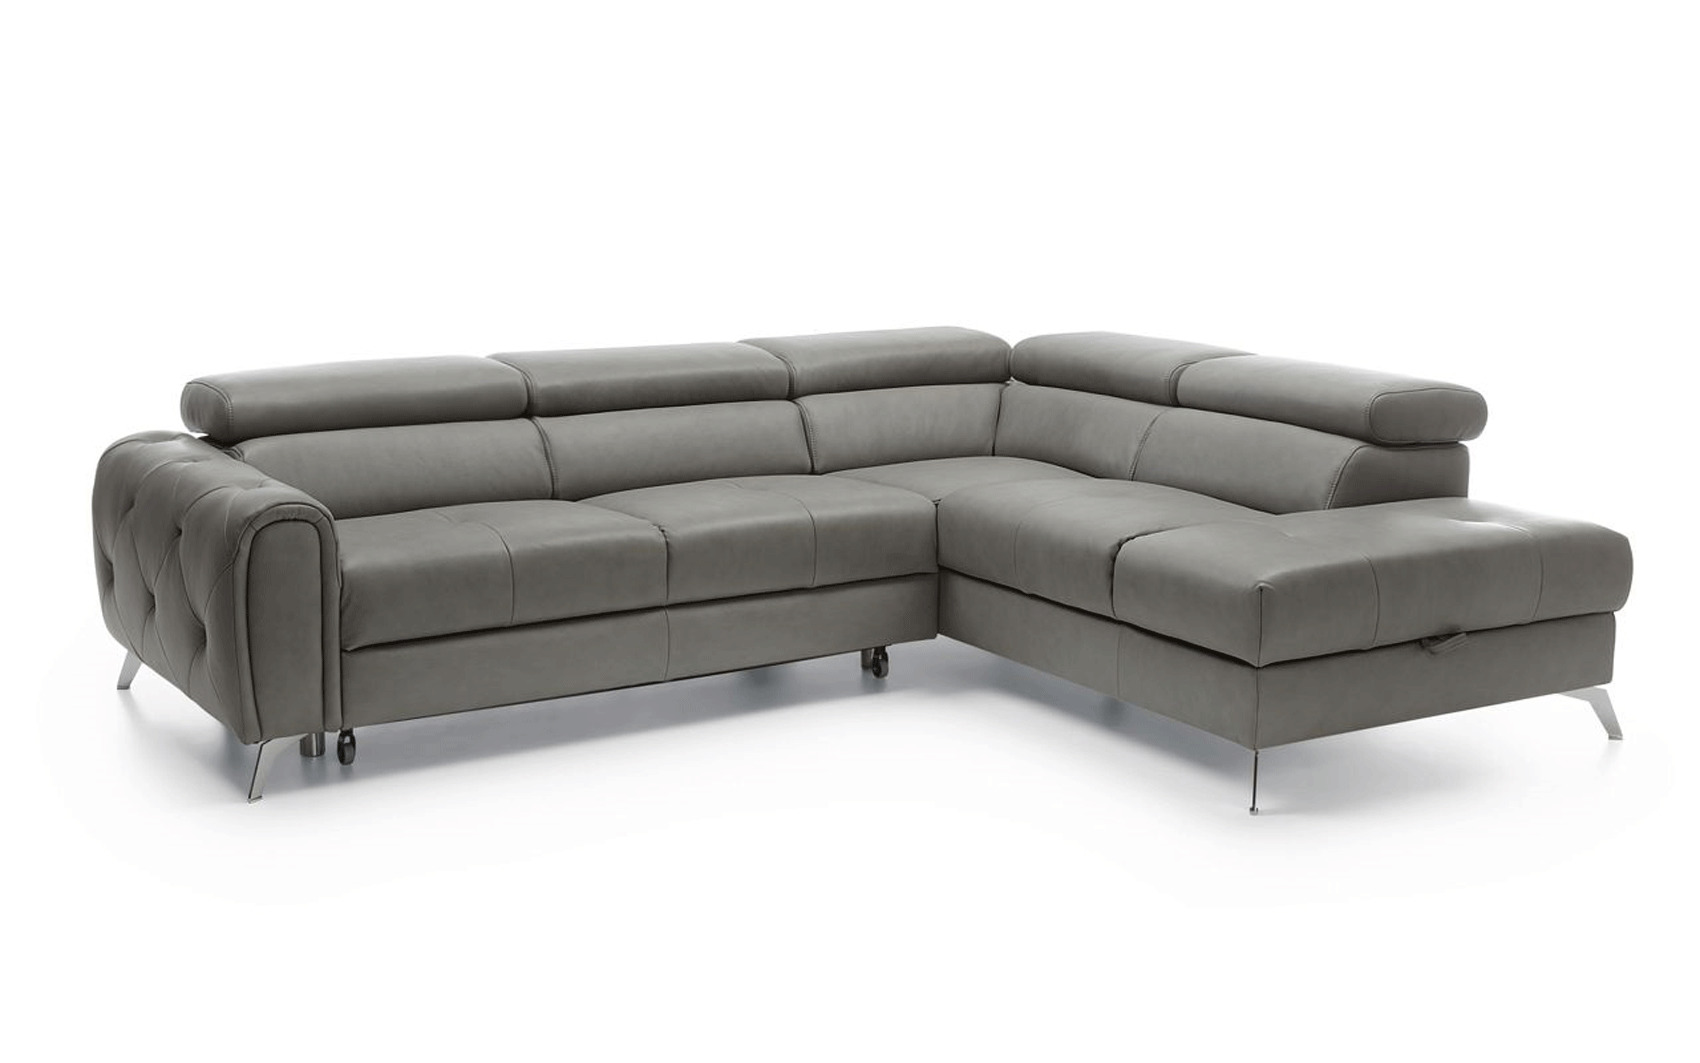 Contemporary Dark Grey Leather Sofabed Sectional - Click Image to Close